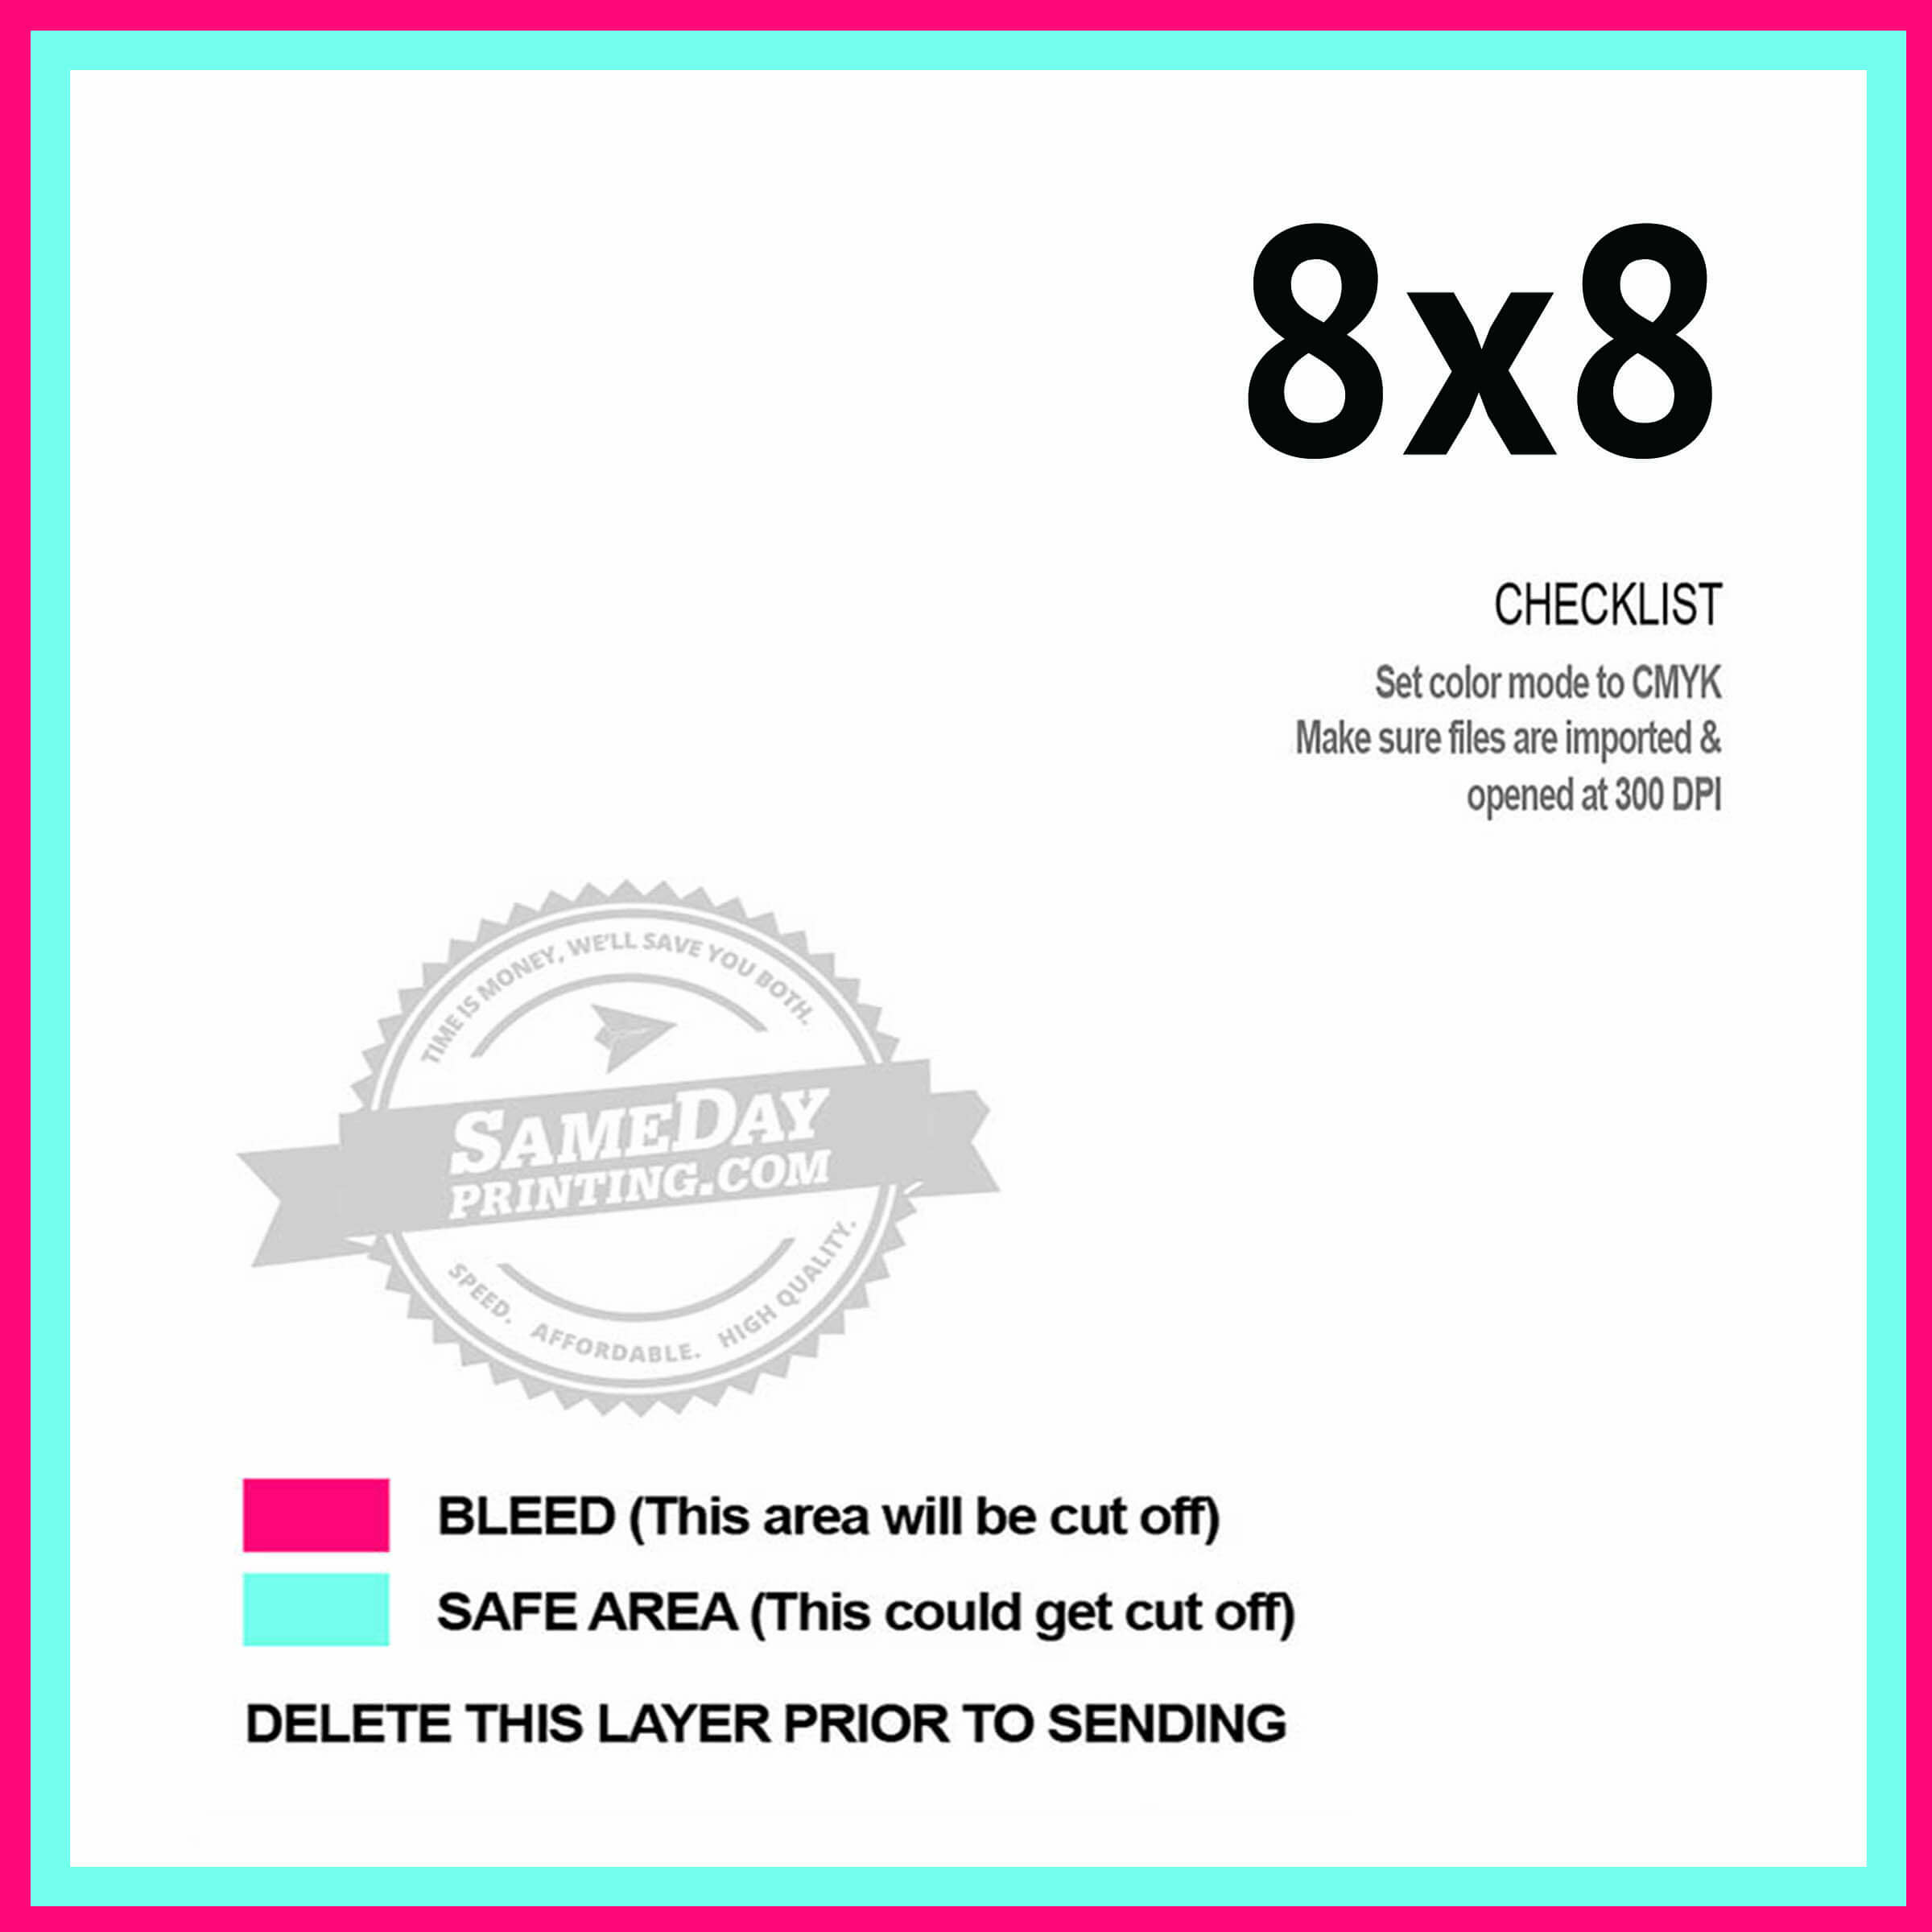 027 Step And Repeat Banner Template File Wonderful Ideas Pertaining To Step And Repeat Banner Template